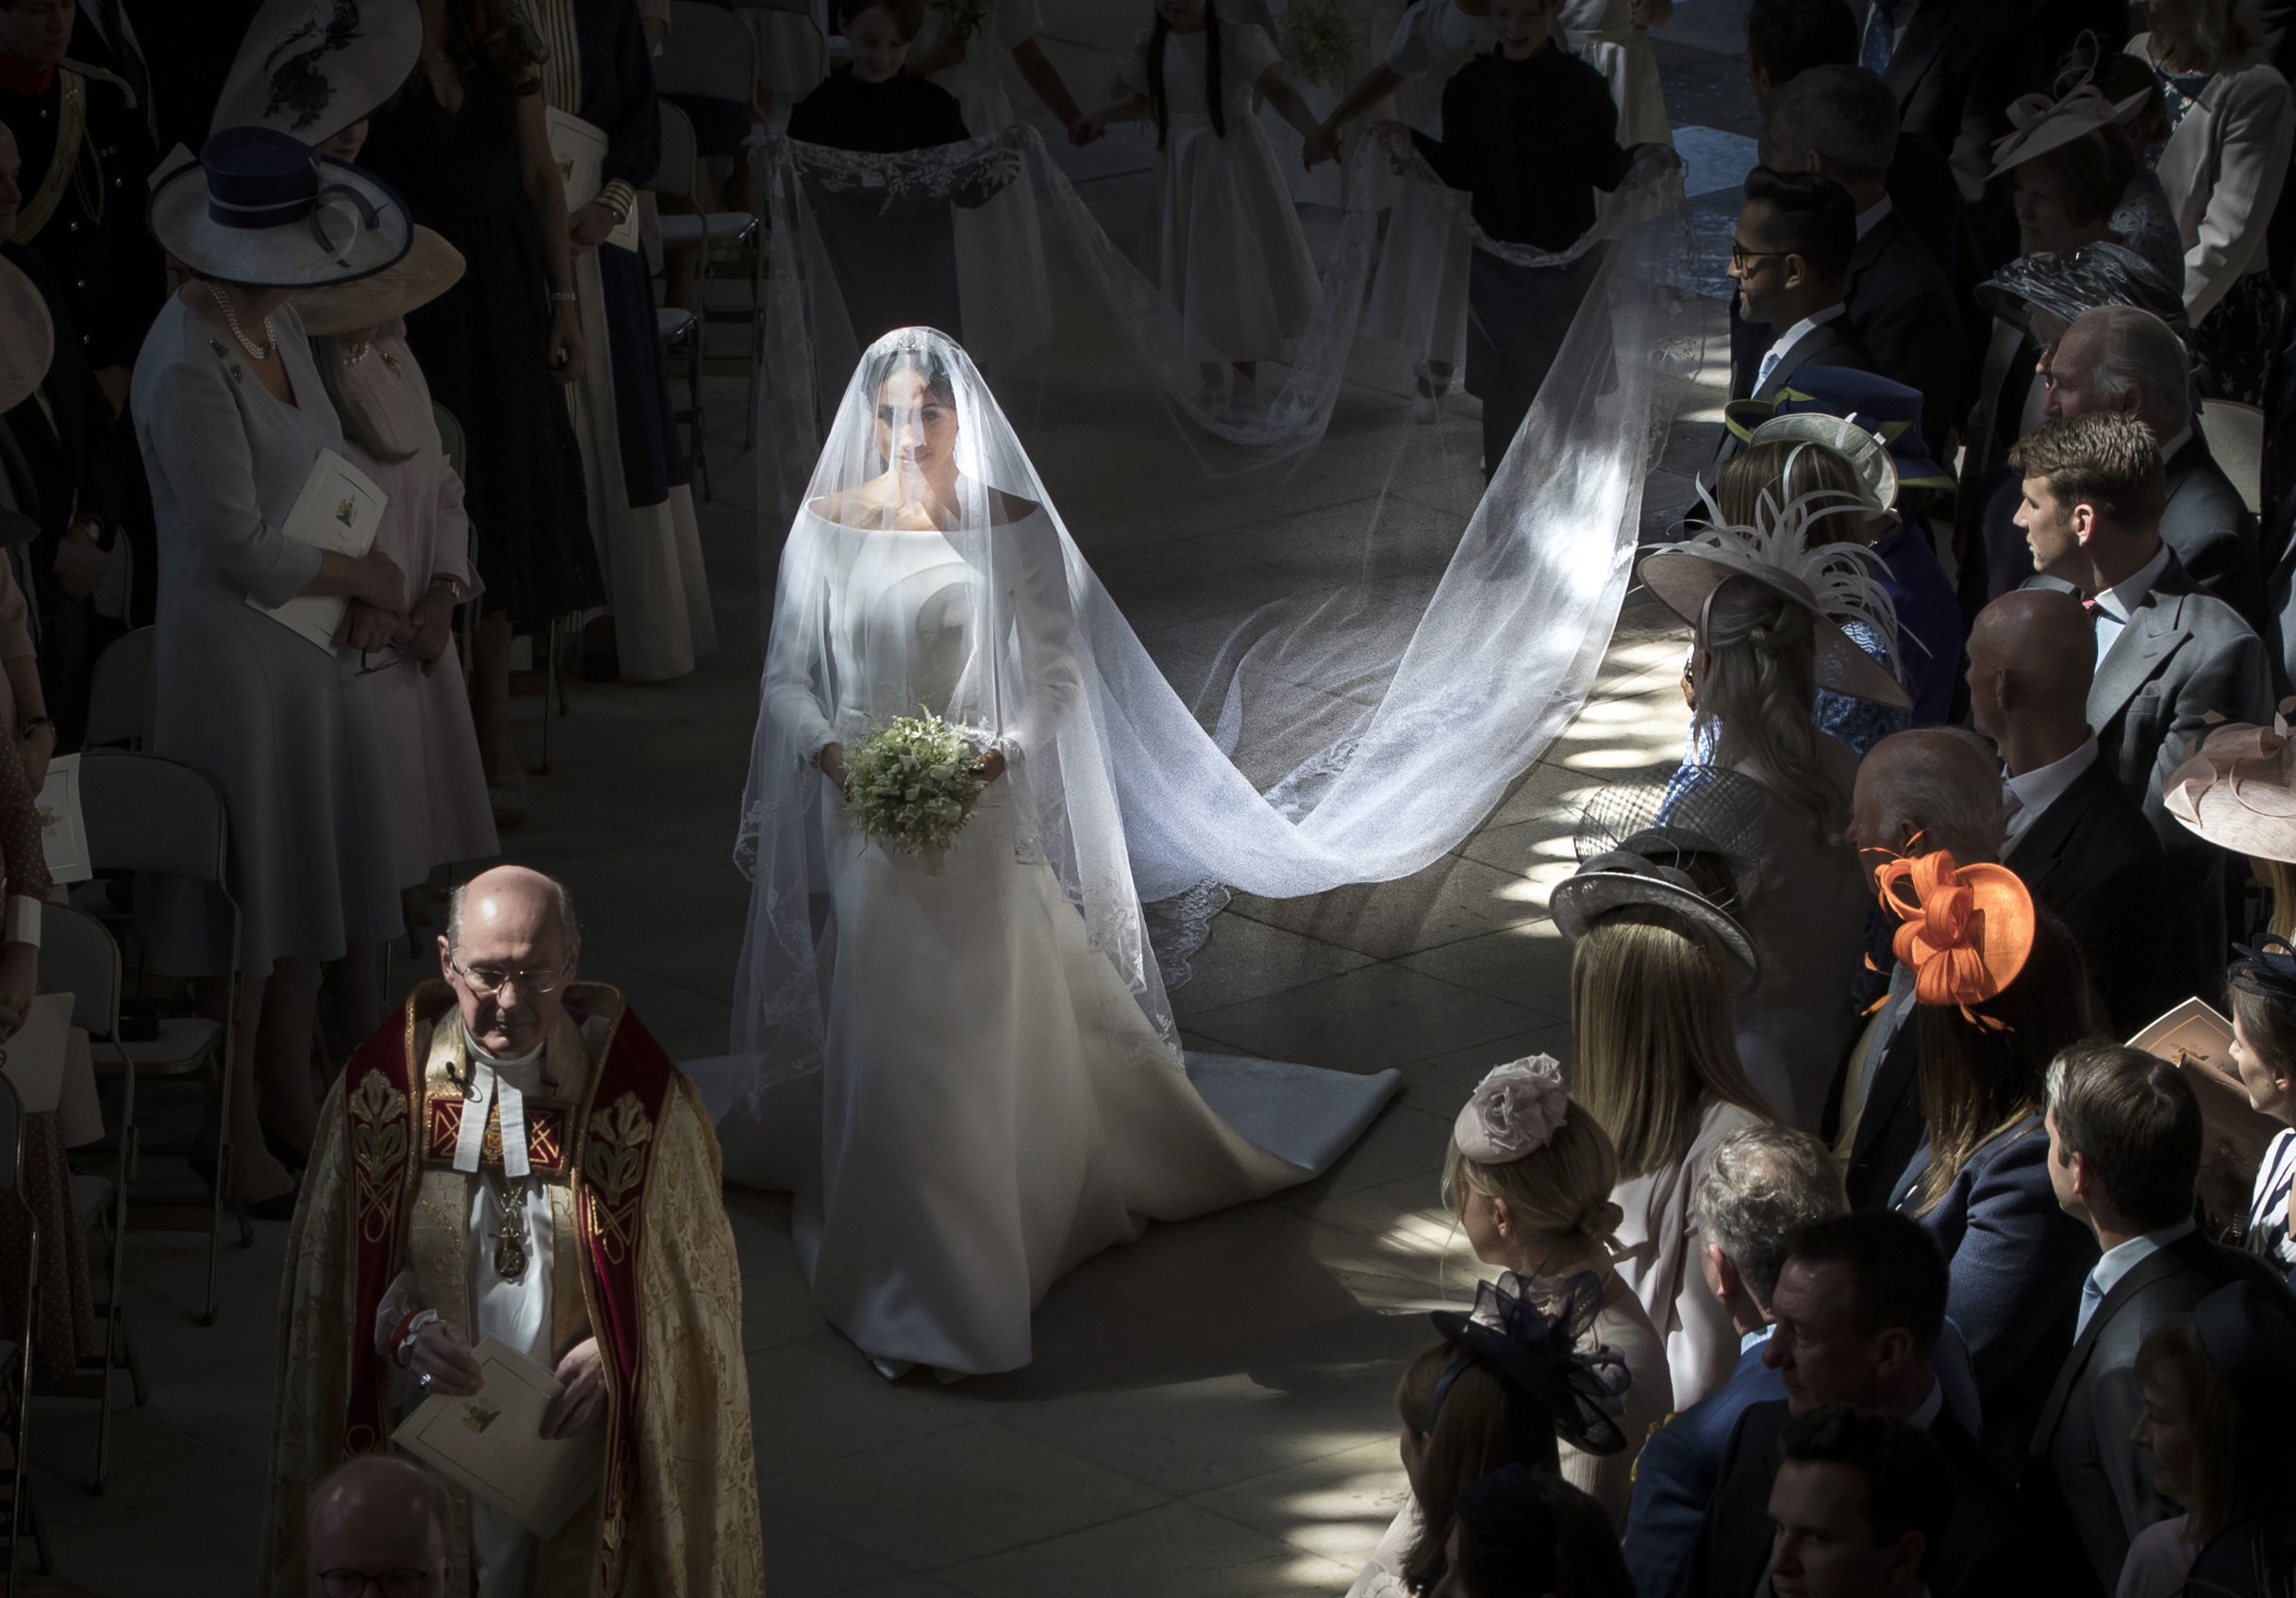 The Duchess of Sussex walks down the aisle